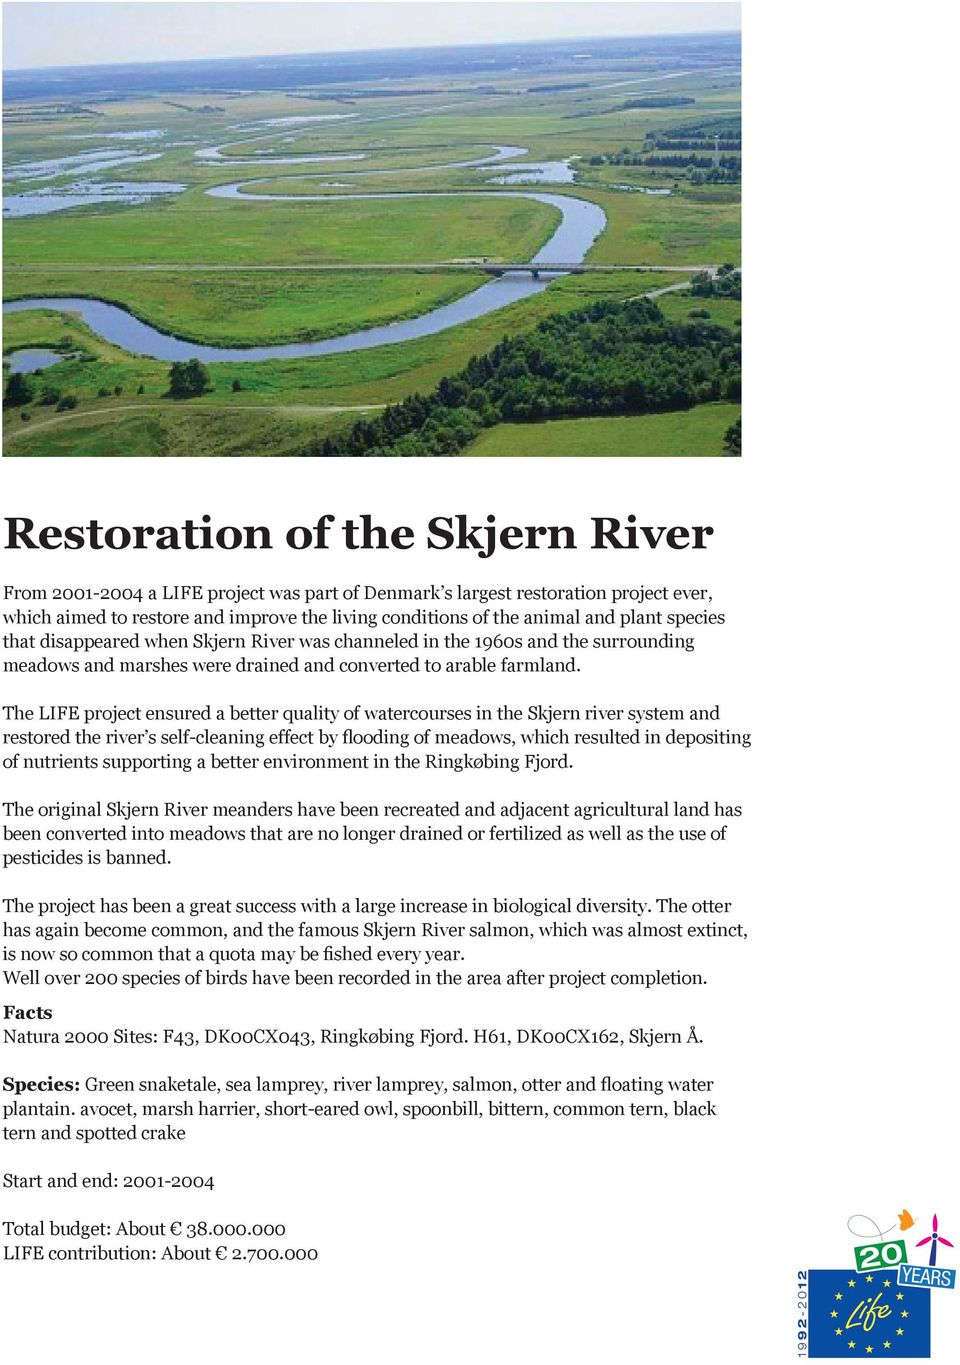 The LIFE project ensured a better quality of watercourses in the Skjern river system and restored the river s self-cleaning effect by flooding of meadows, which resulted in depositing of nutrients